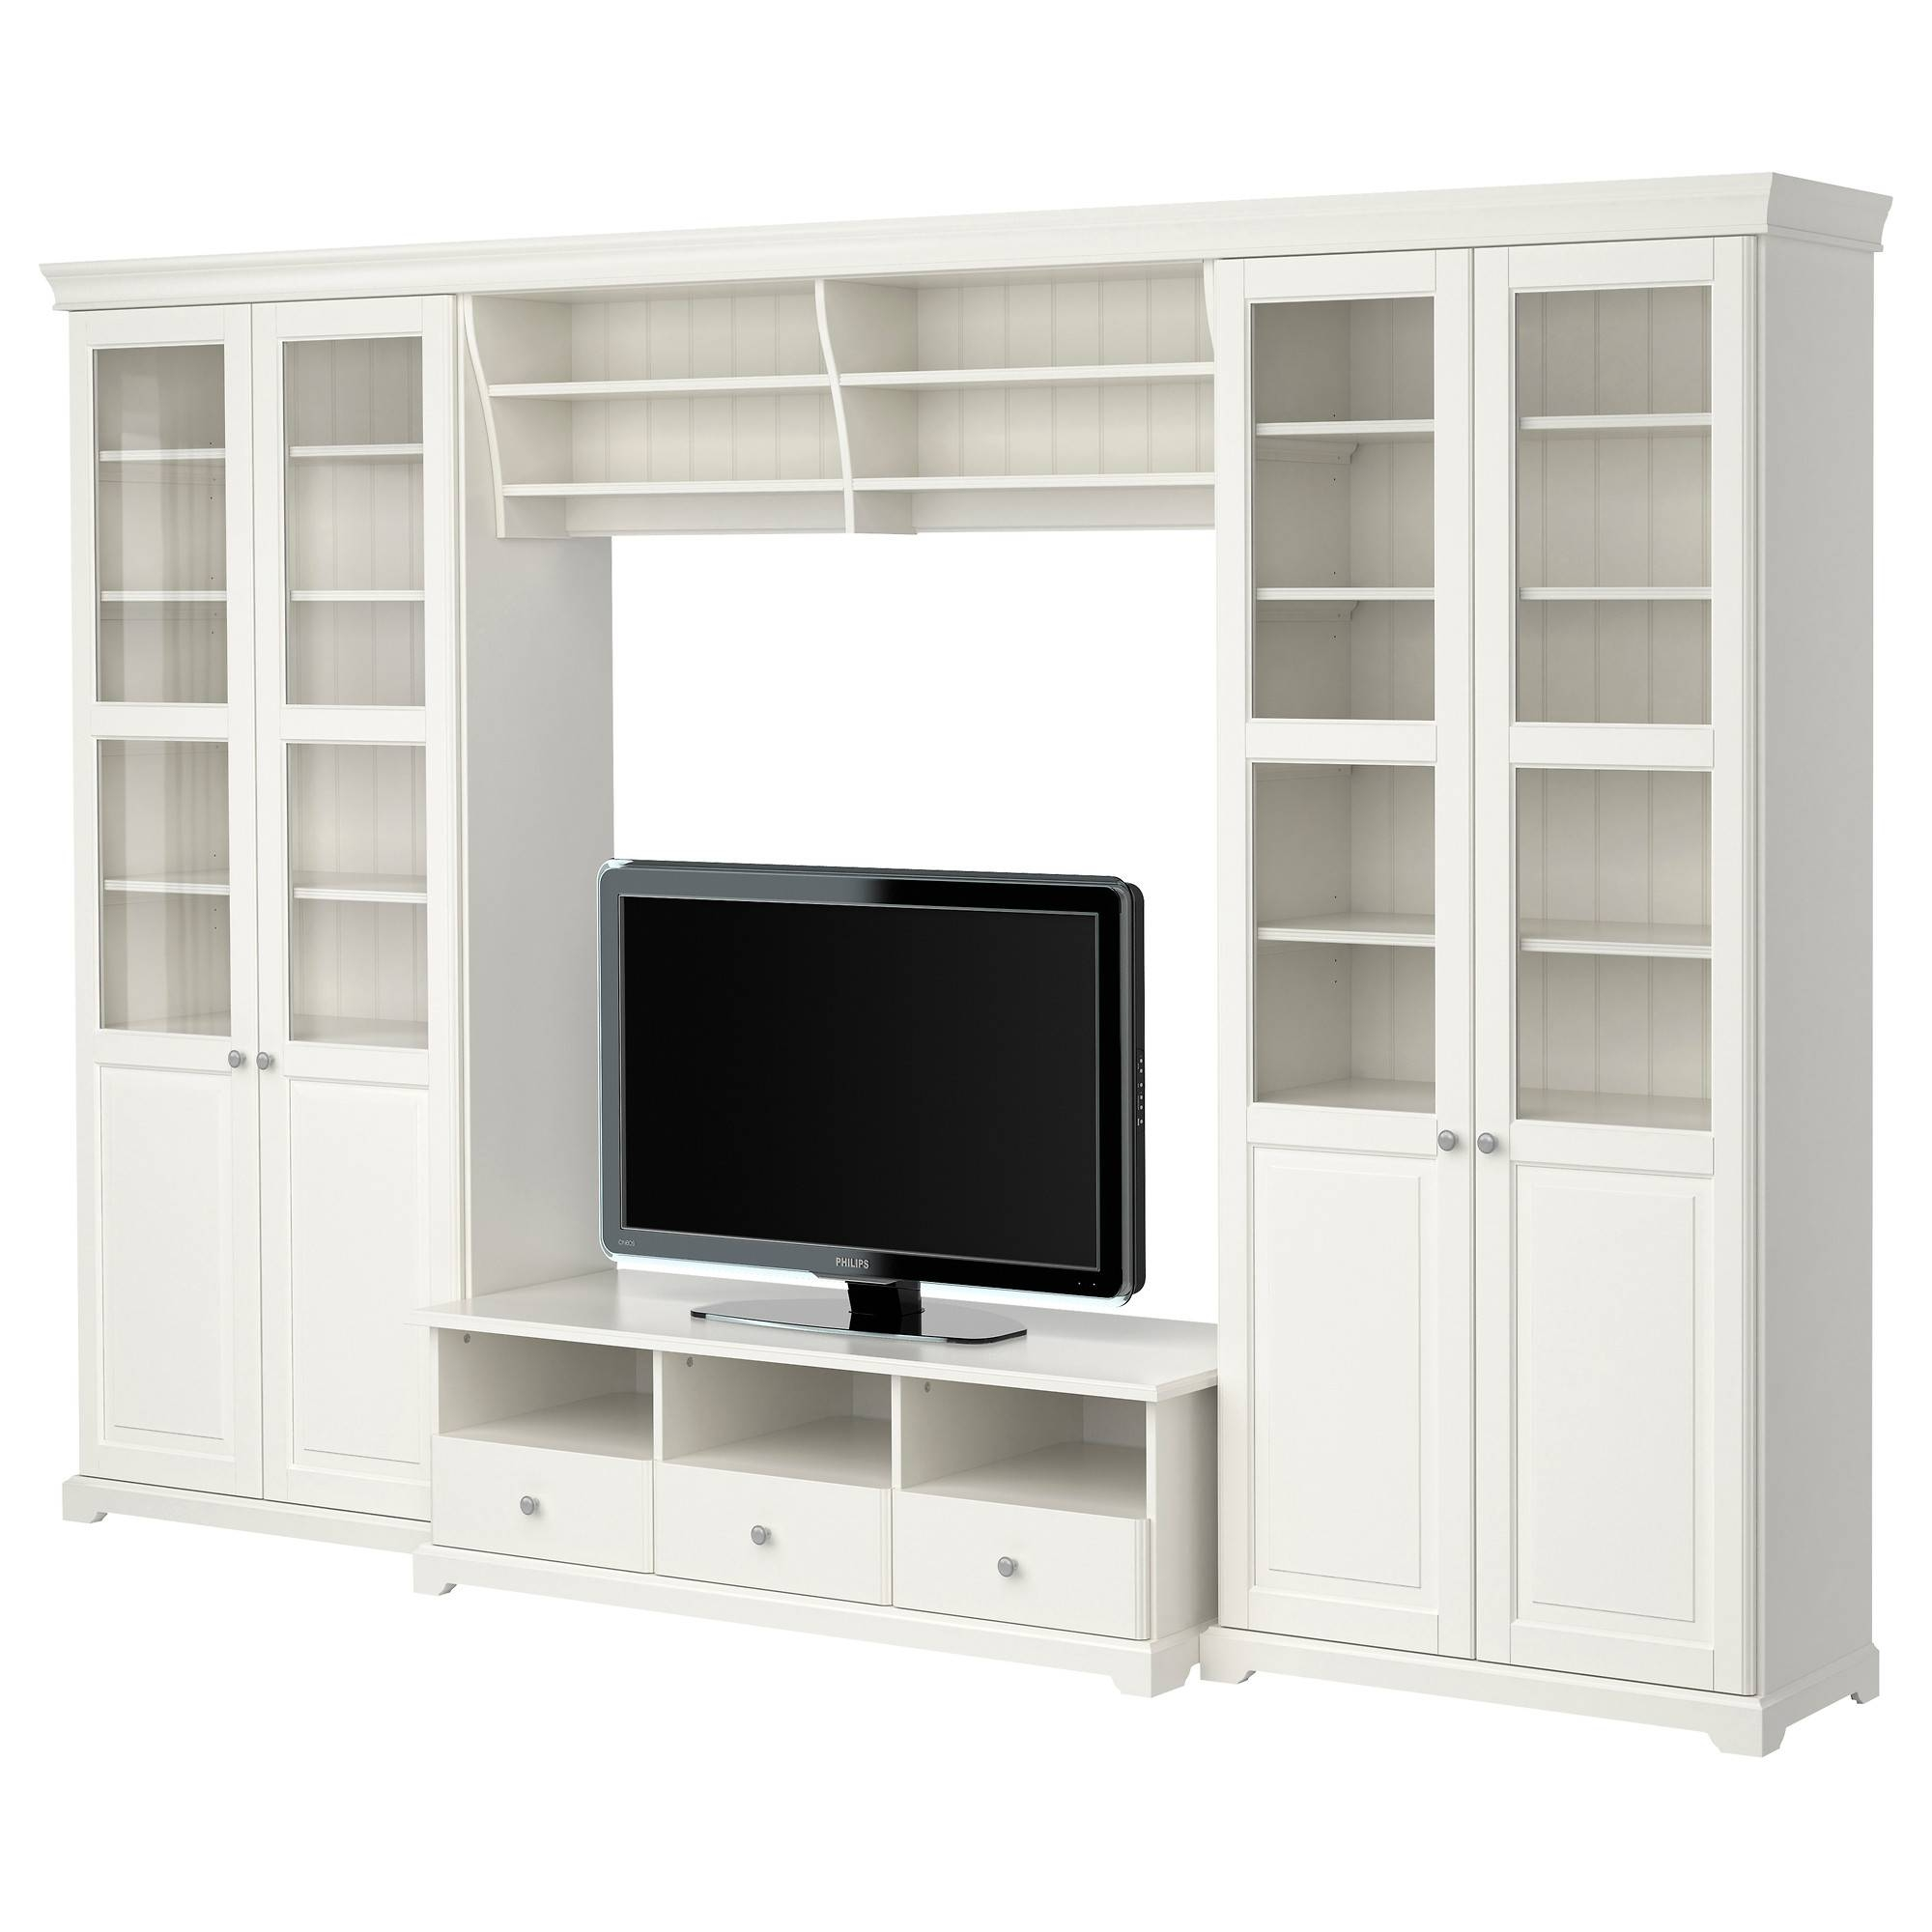 Tv Stands & Entertainment Centers - Ikea for Bookshelf Tv Stands Combo (Image 11 of 15)